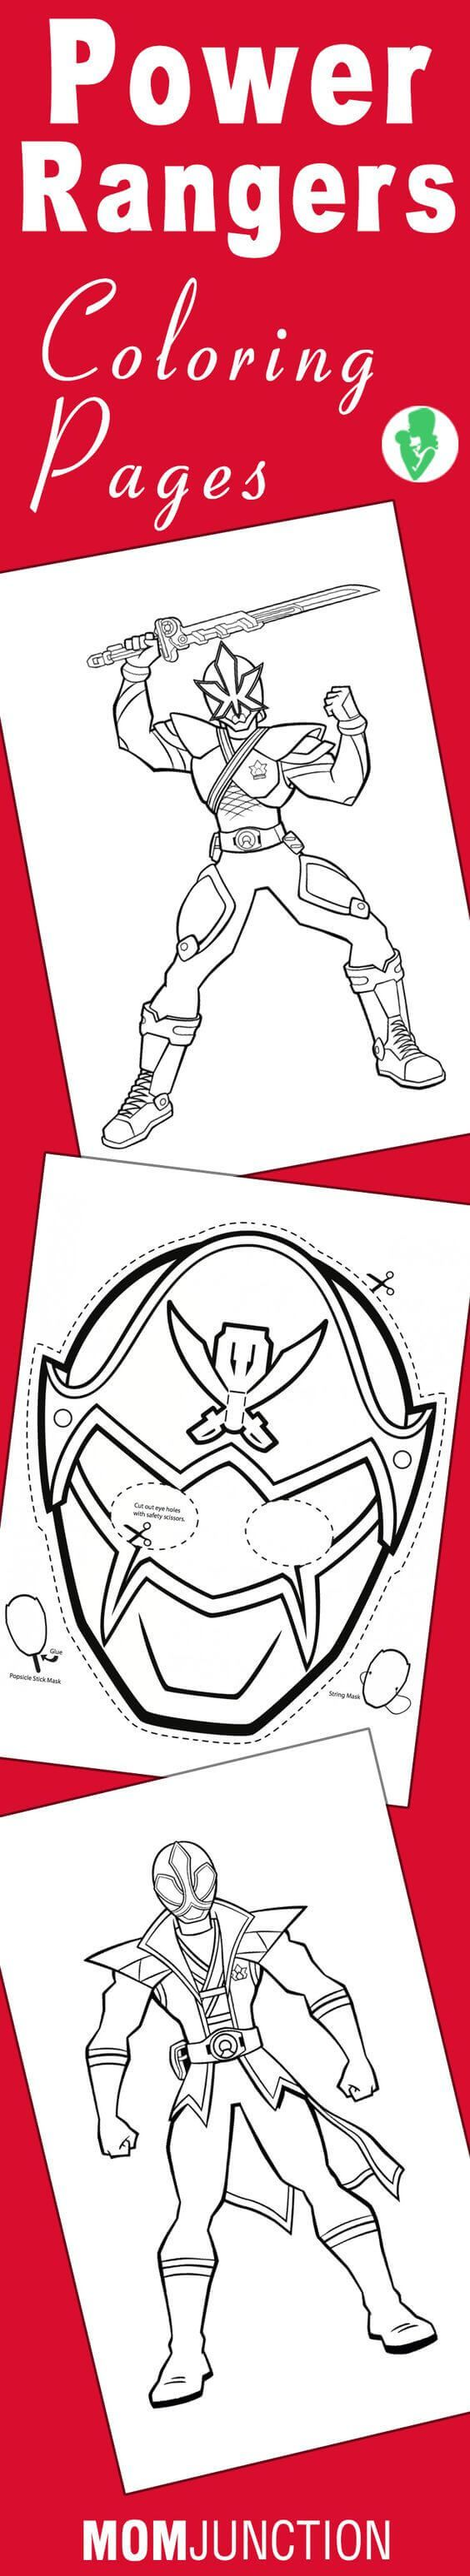 Print your own Power Rangers coloring pages! | Power Rangers ...